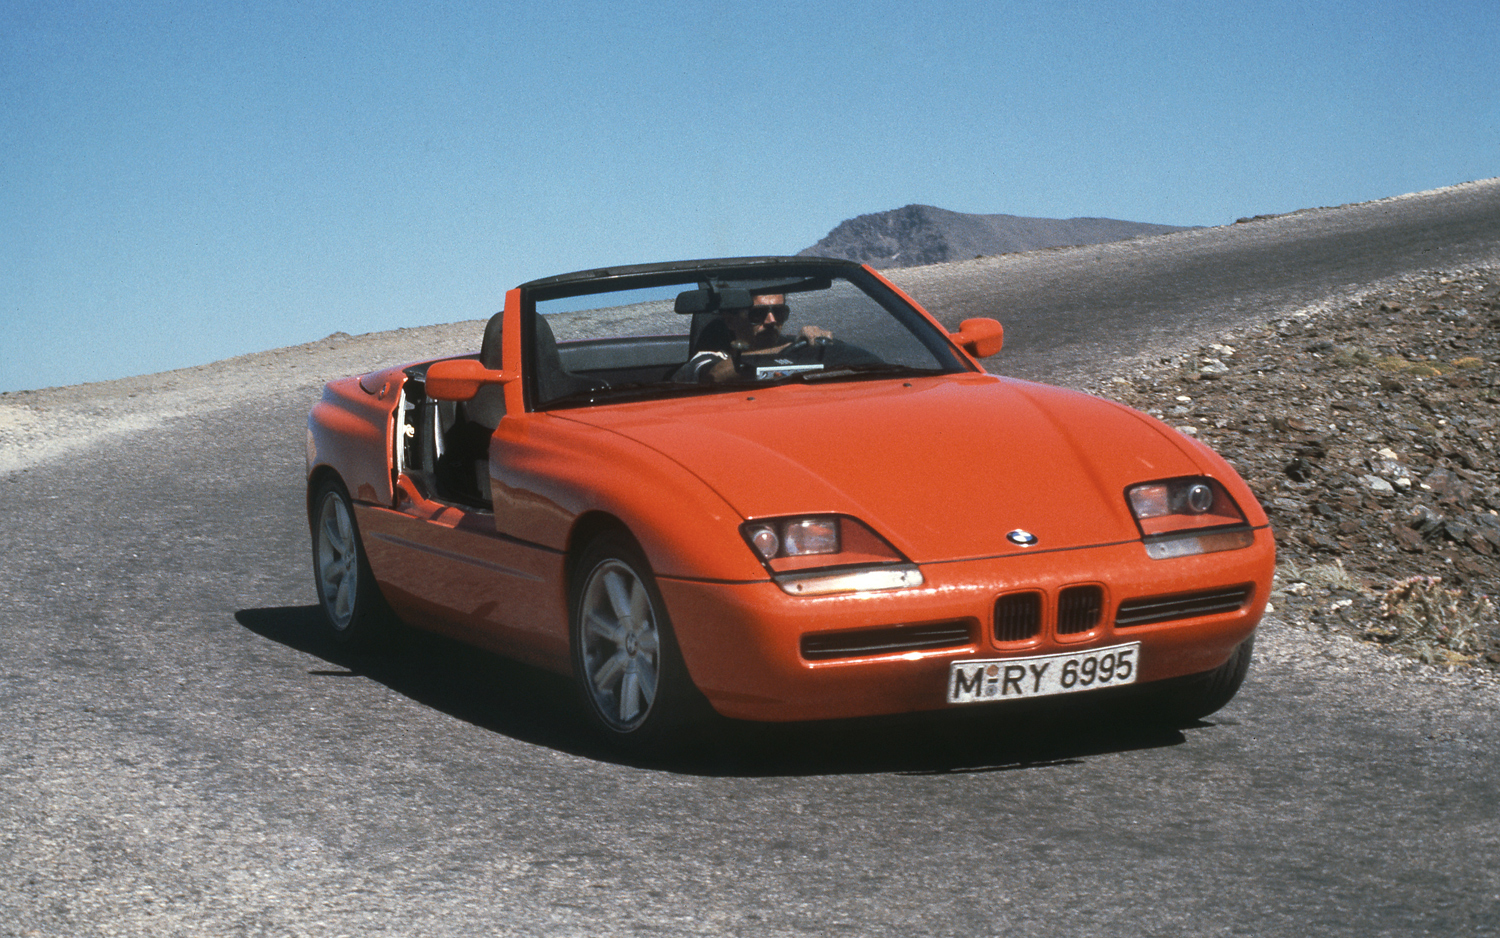 Z First Celebrating 25 Years Of The Bmw Z1 In Photos Motortrend